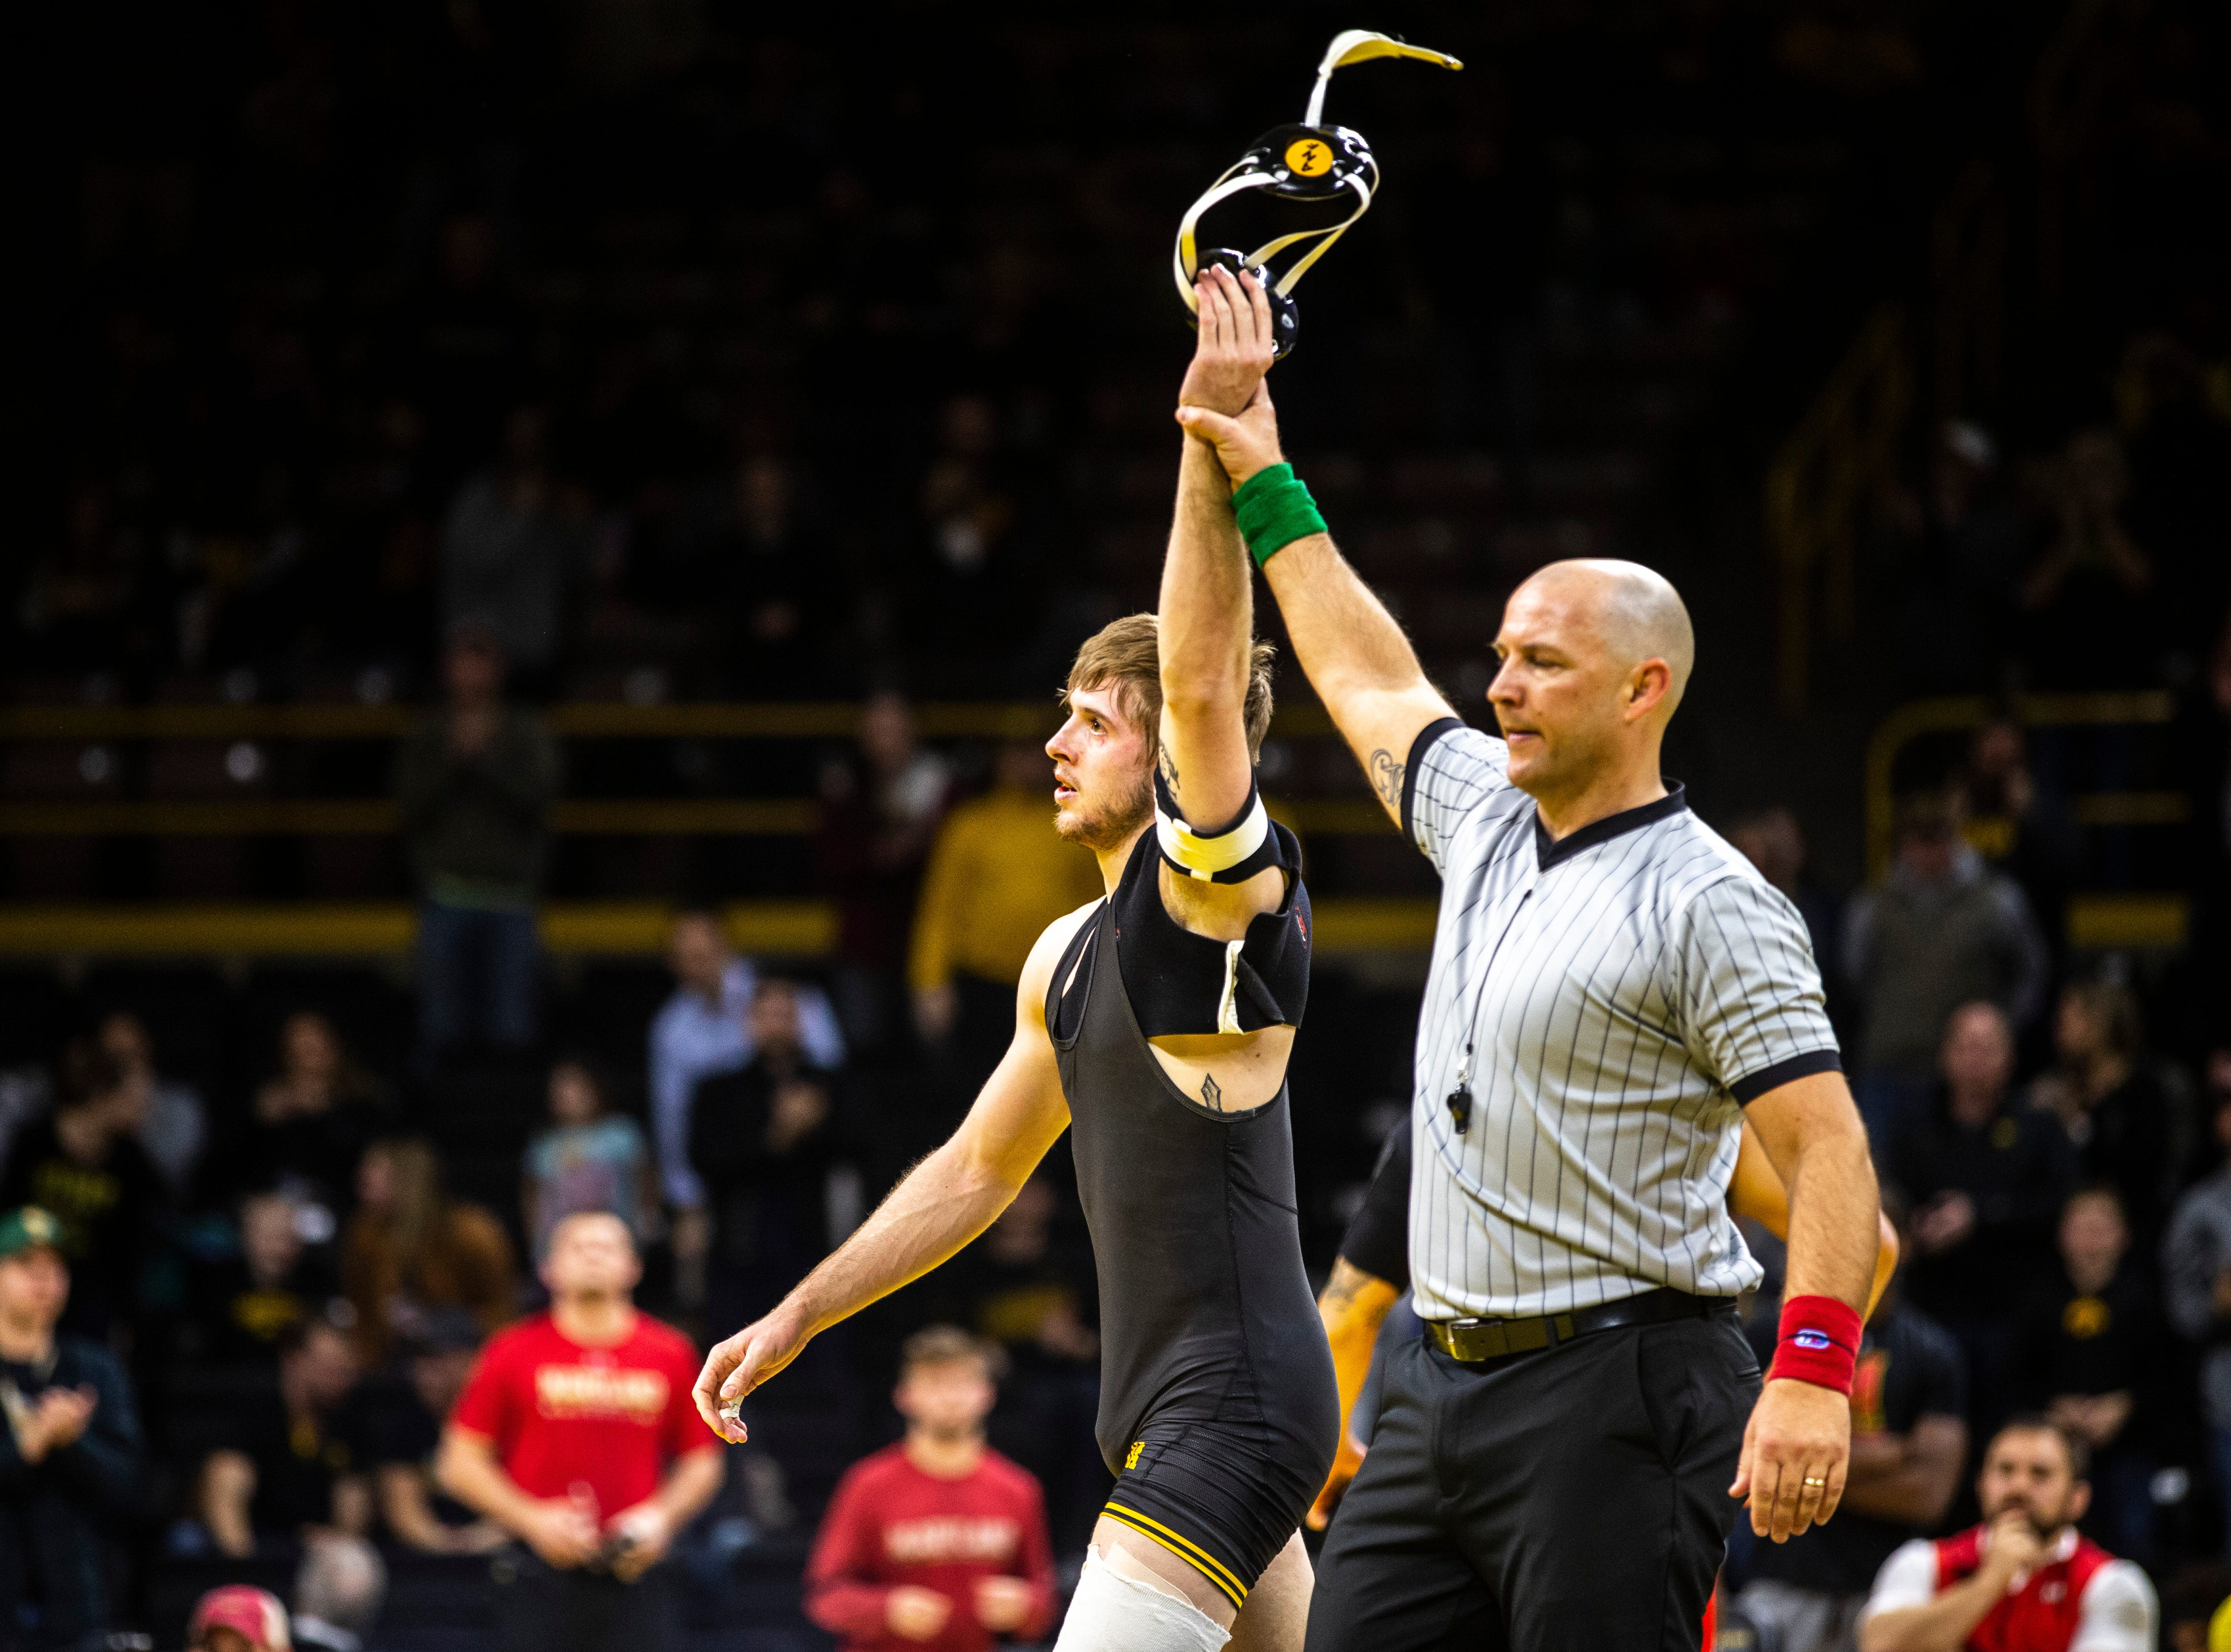 Iowa's Mitch Bowman has his hand raised after pinning Maryland's Josh Uglade at 174 during a NCAA Big Ten Conference wrestling dual on Friday, Feb. 8, 2019 at Carver-Hawkeye Arena in Iowa City, Iowa.